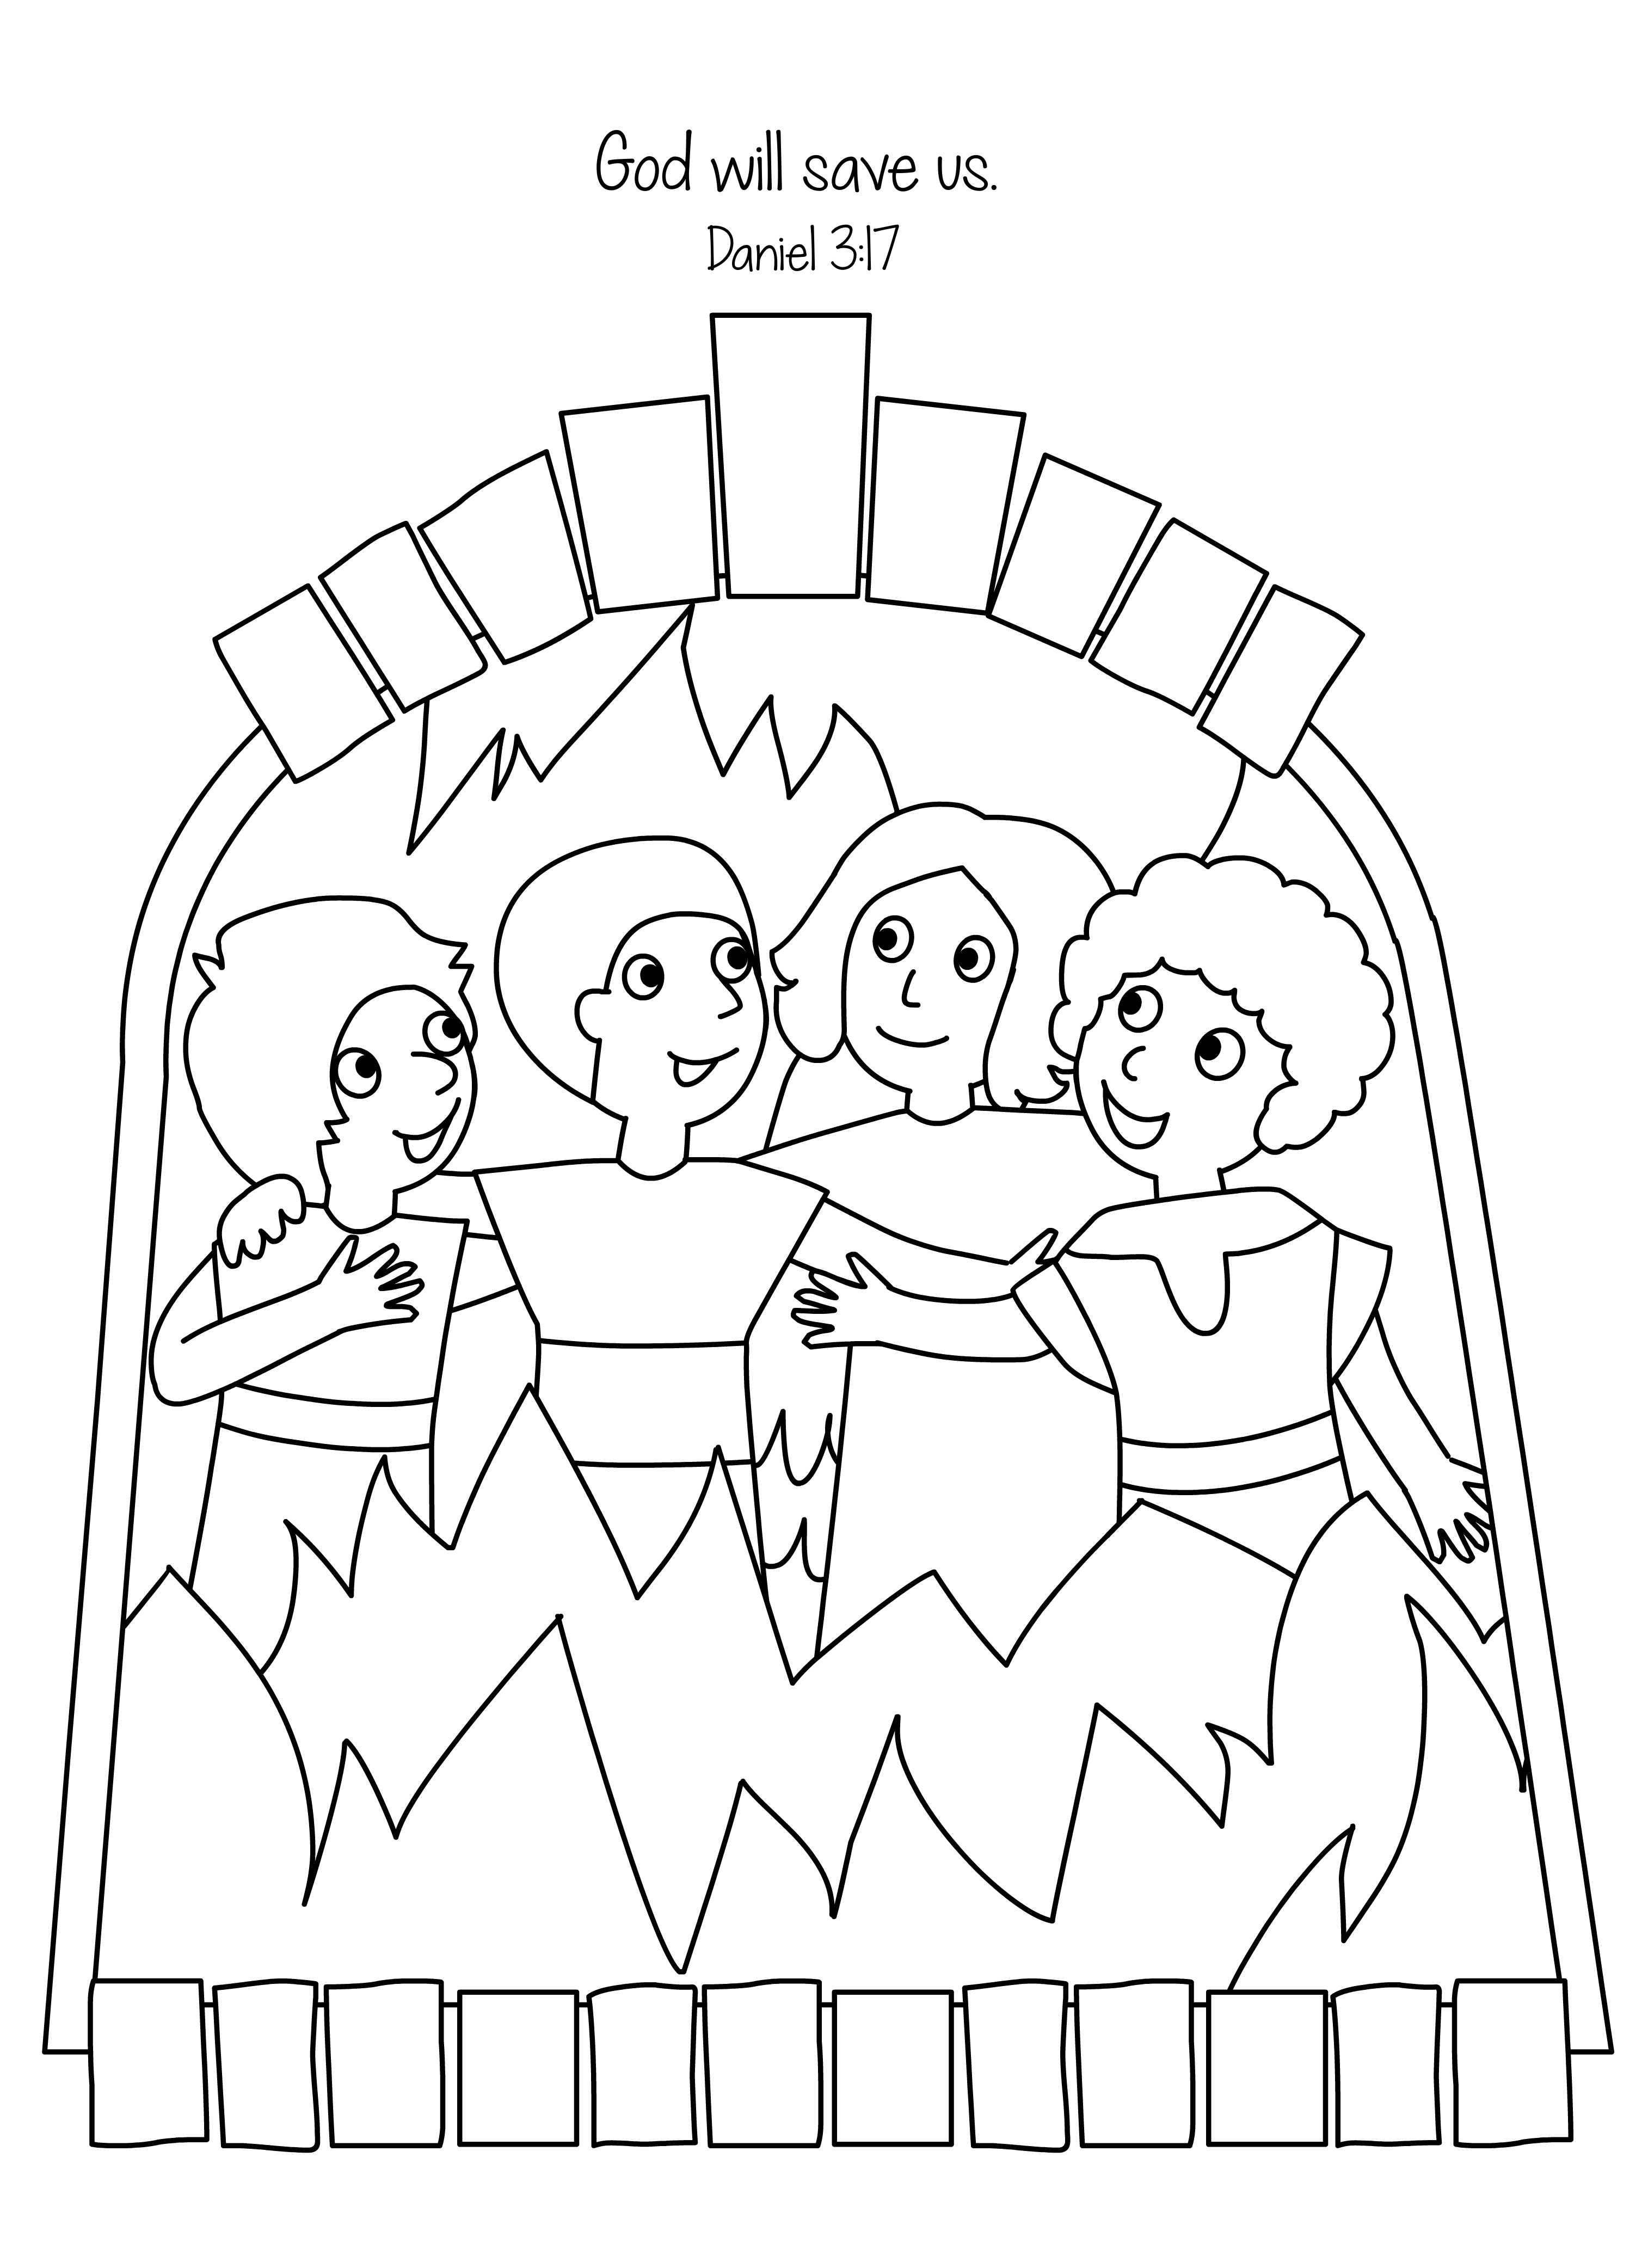 Free Shadrach Meshach And Abednego Coloring Page, Download.